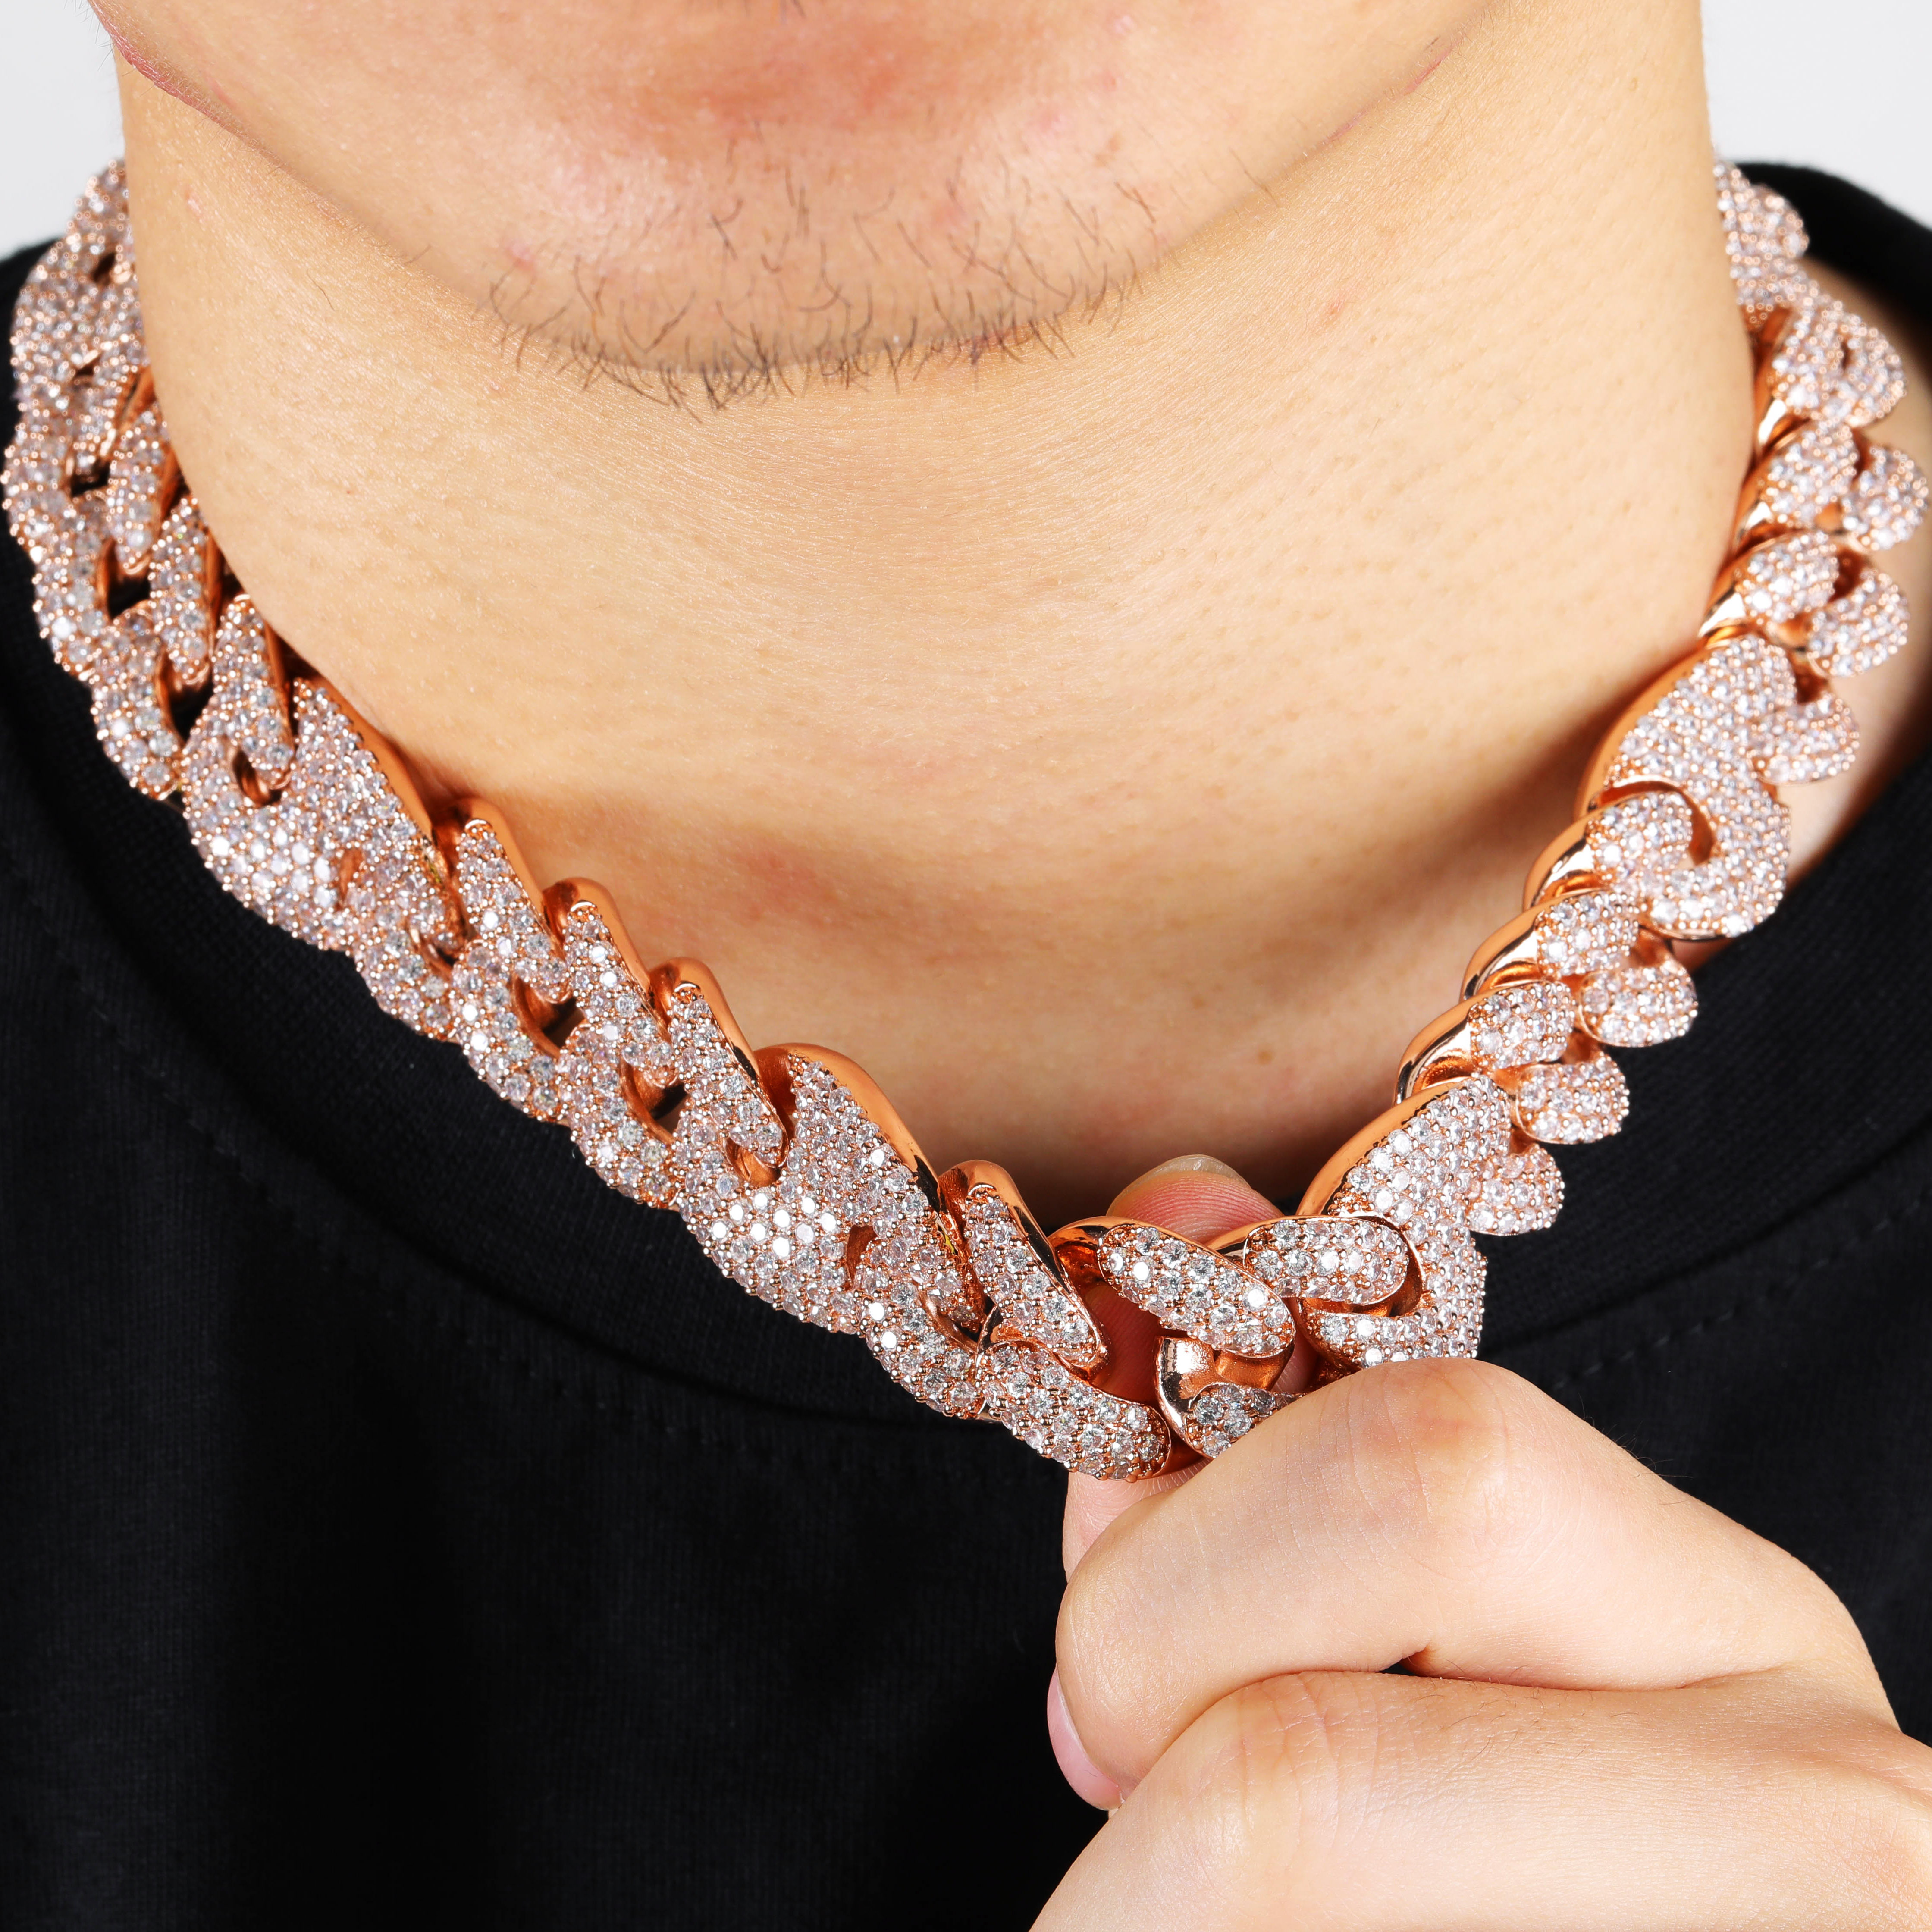 Image 3 - TOPGRILLZ 20mm Miami Lock Clasp Cuban Necklace Iced Out AAA Cubic Zircon Cuban Link Chain Hip Hop Jewelry For Man Necklaces-in Chain Necklaces from Jewelry & Accessories